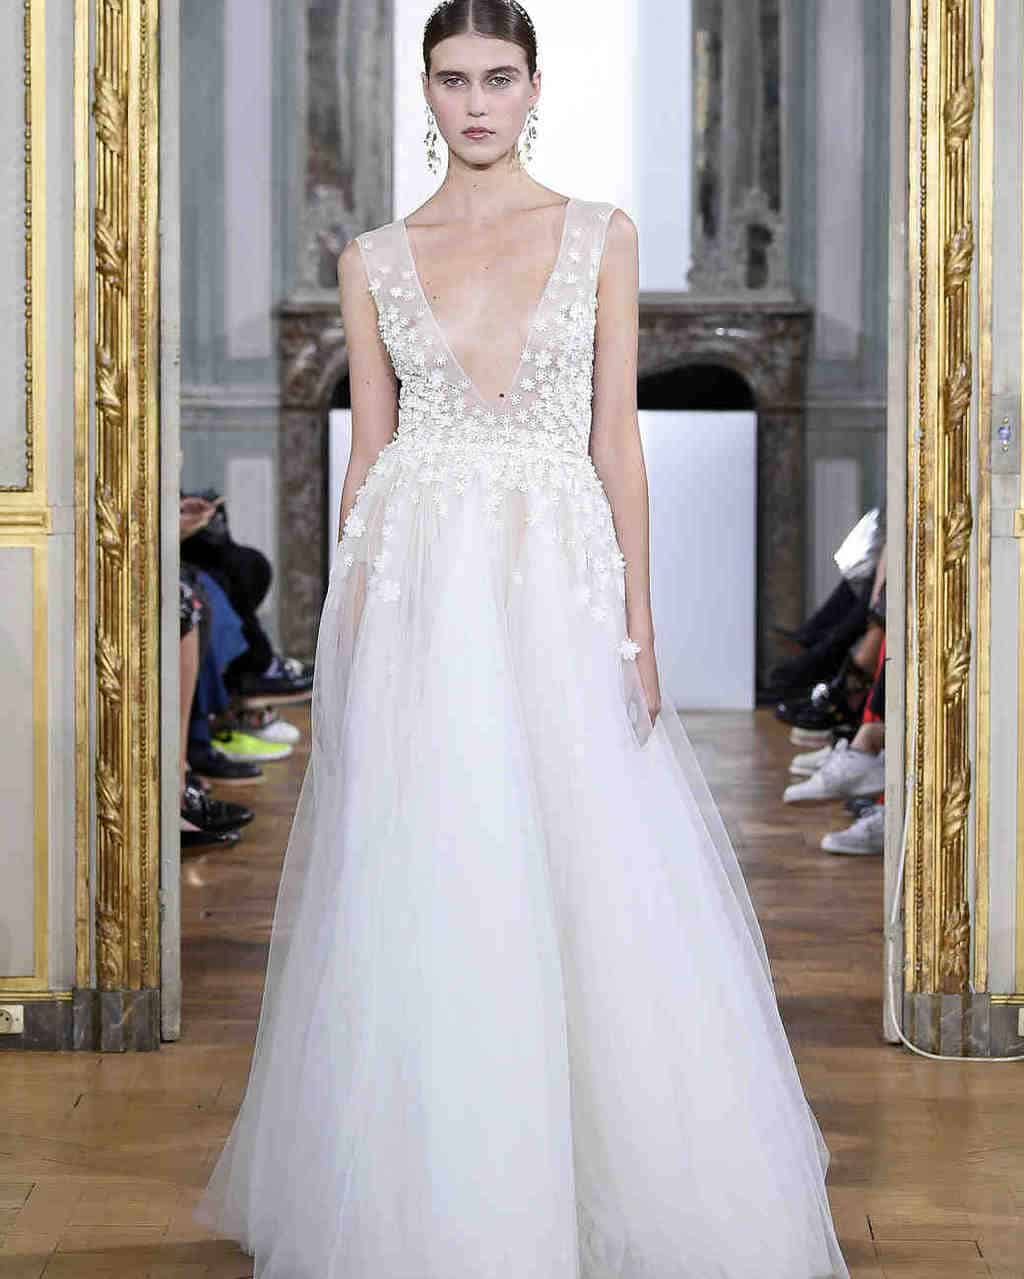 kaviar-gauche-wedding-dress-fall2017-003_vert